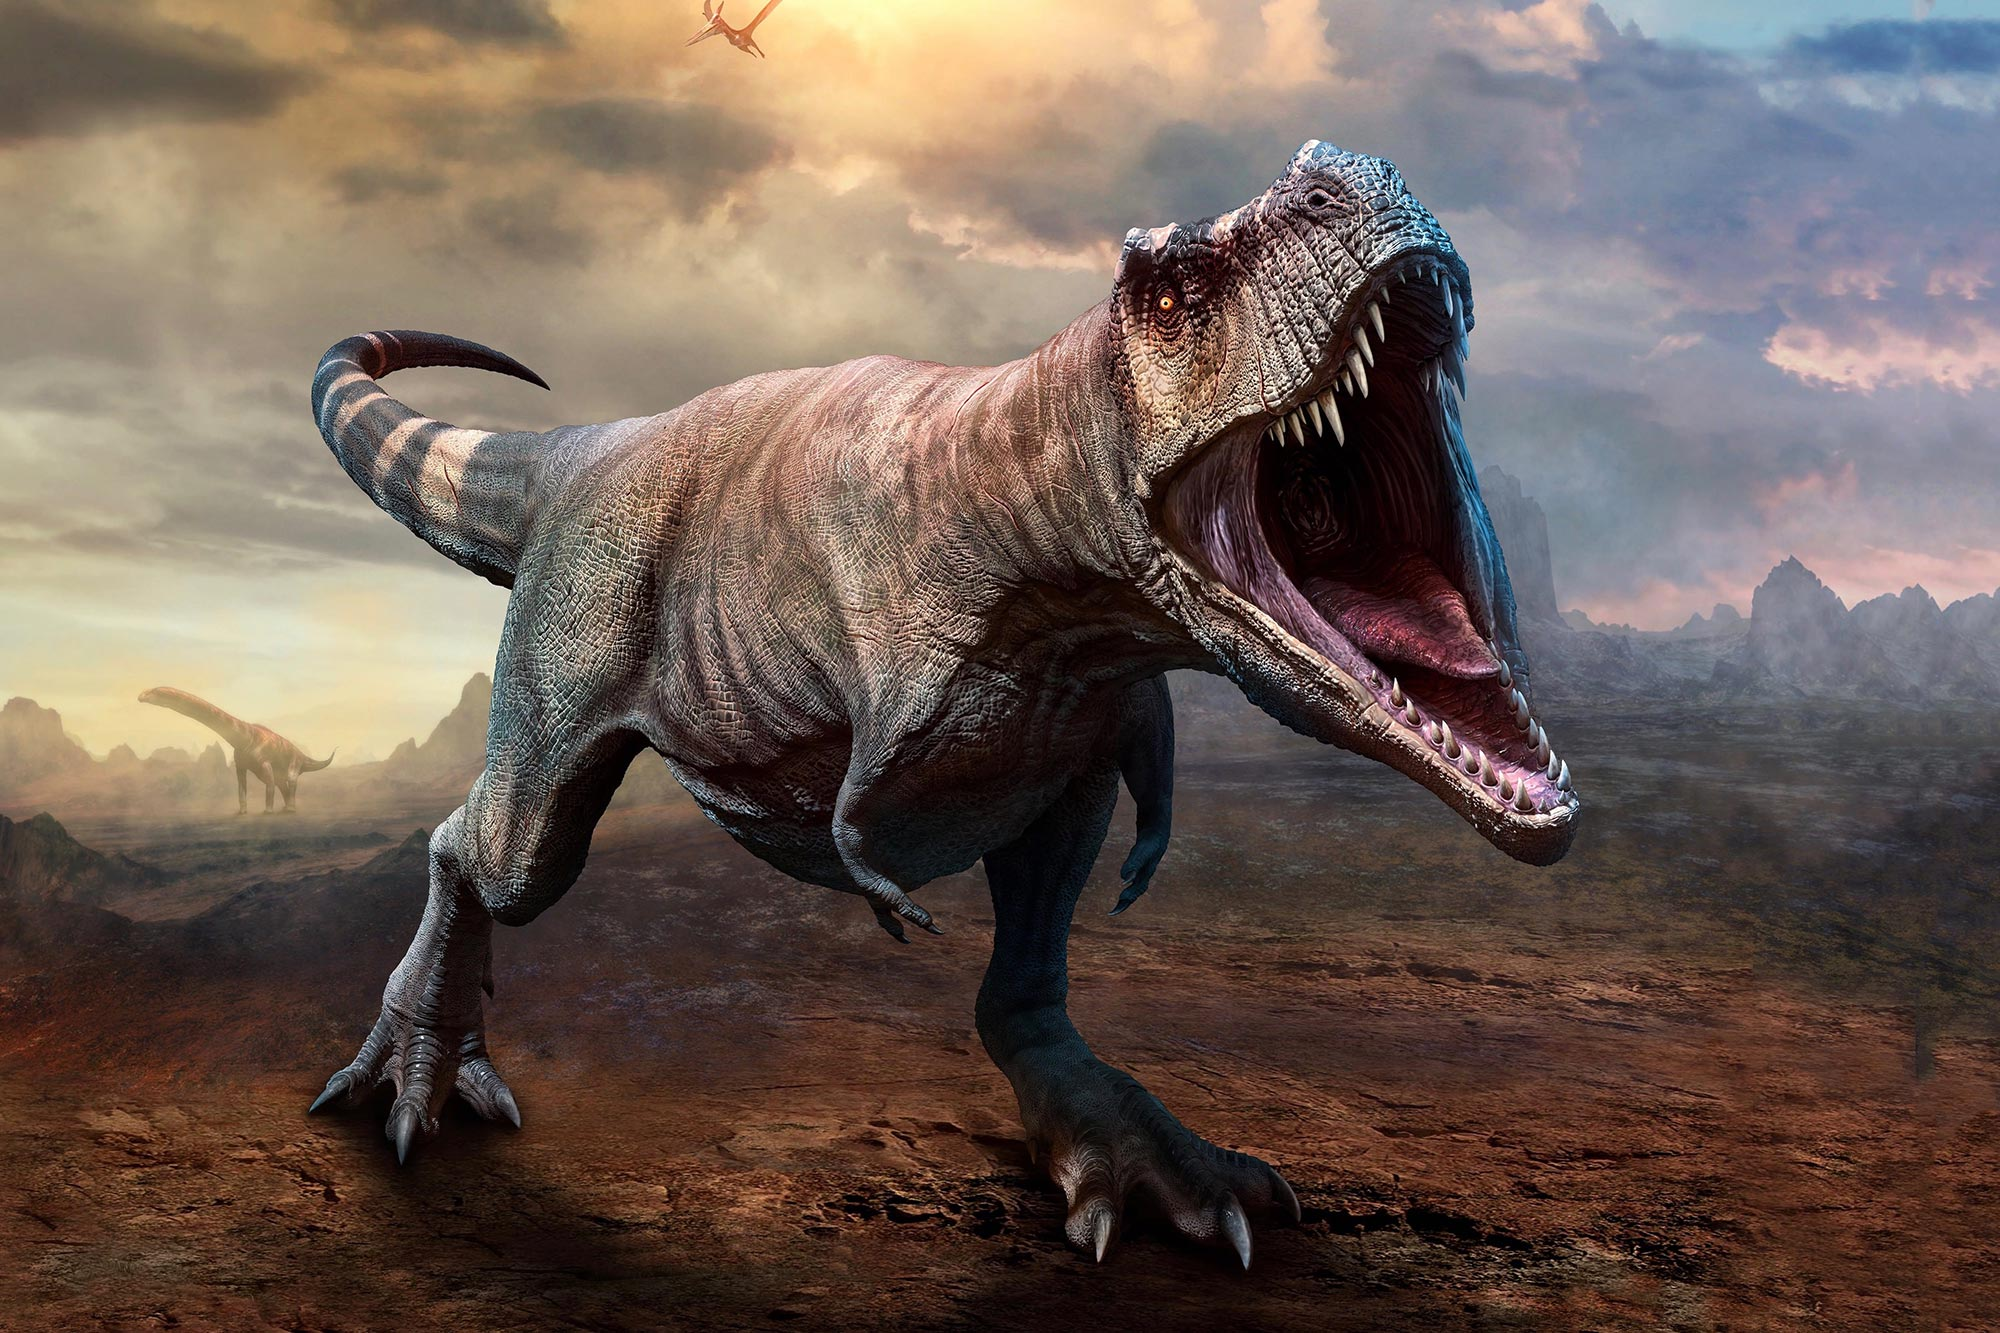 """Growth Rings From Fossil Bones Reveals T. rex Had Huge Growth Spurts, but Other Dinosaurs Grew """"Slow and Steady"""" - SciTechDaily"""